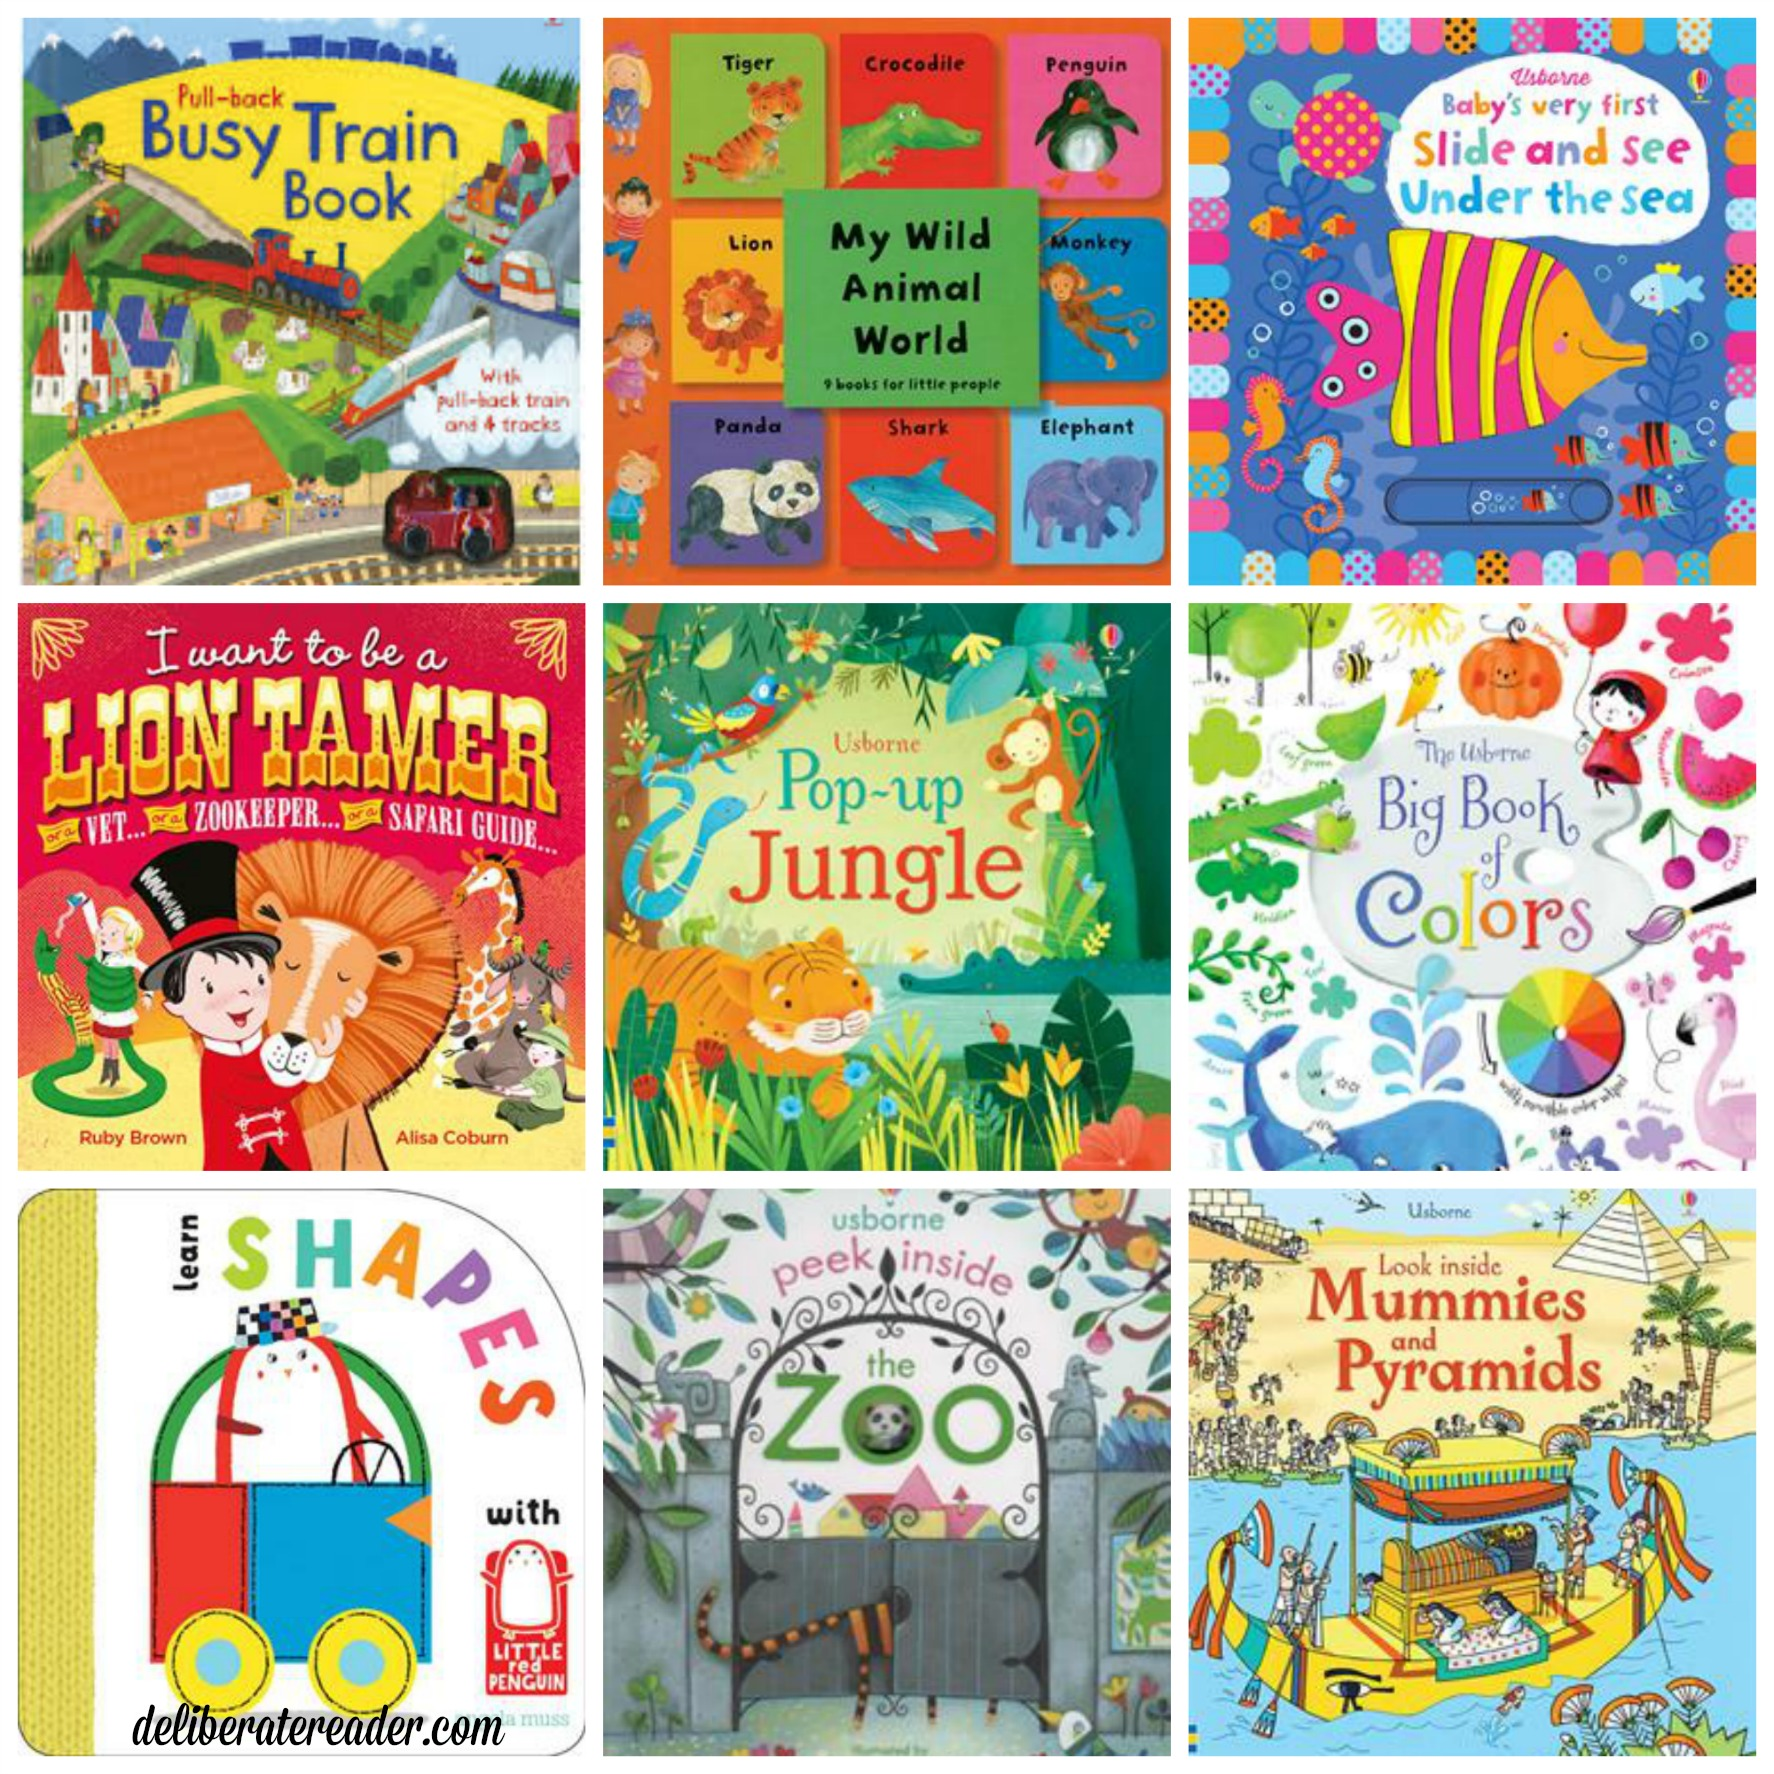 February 2016 Usborne board books